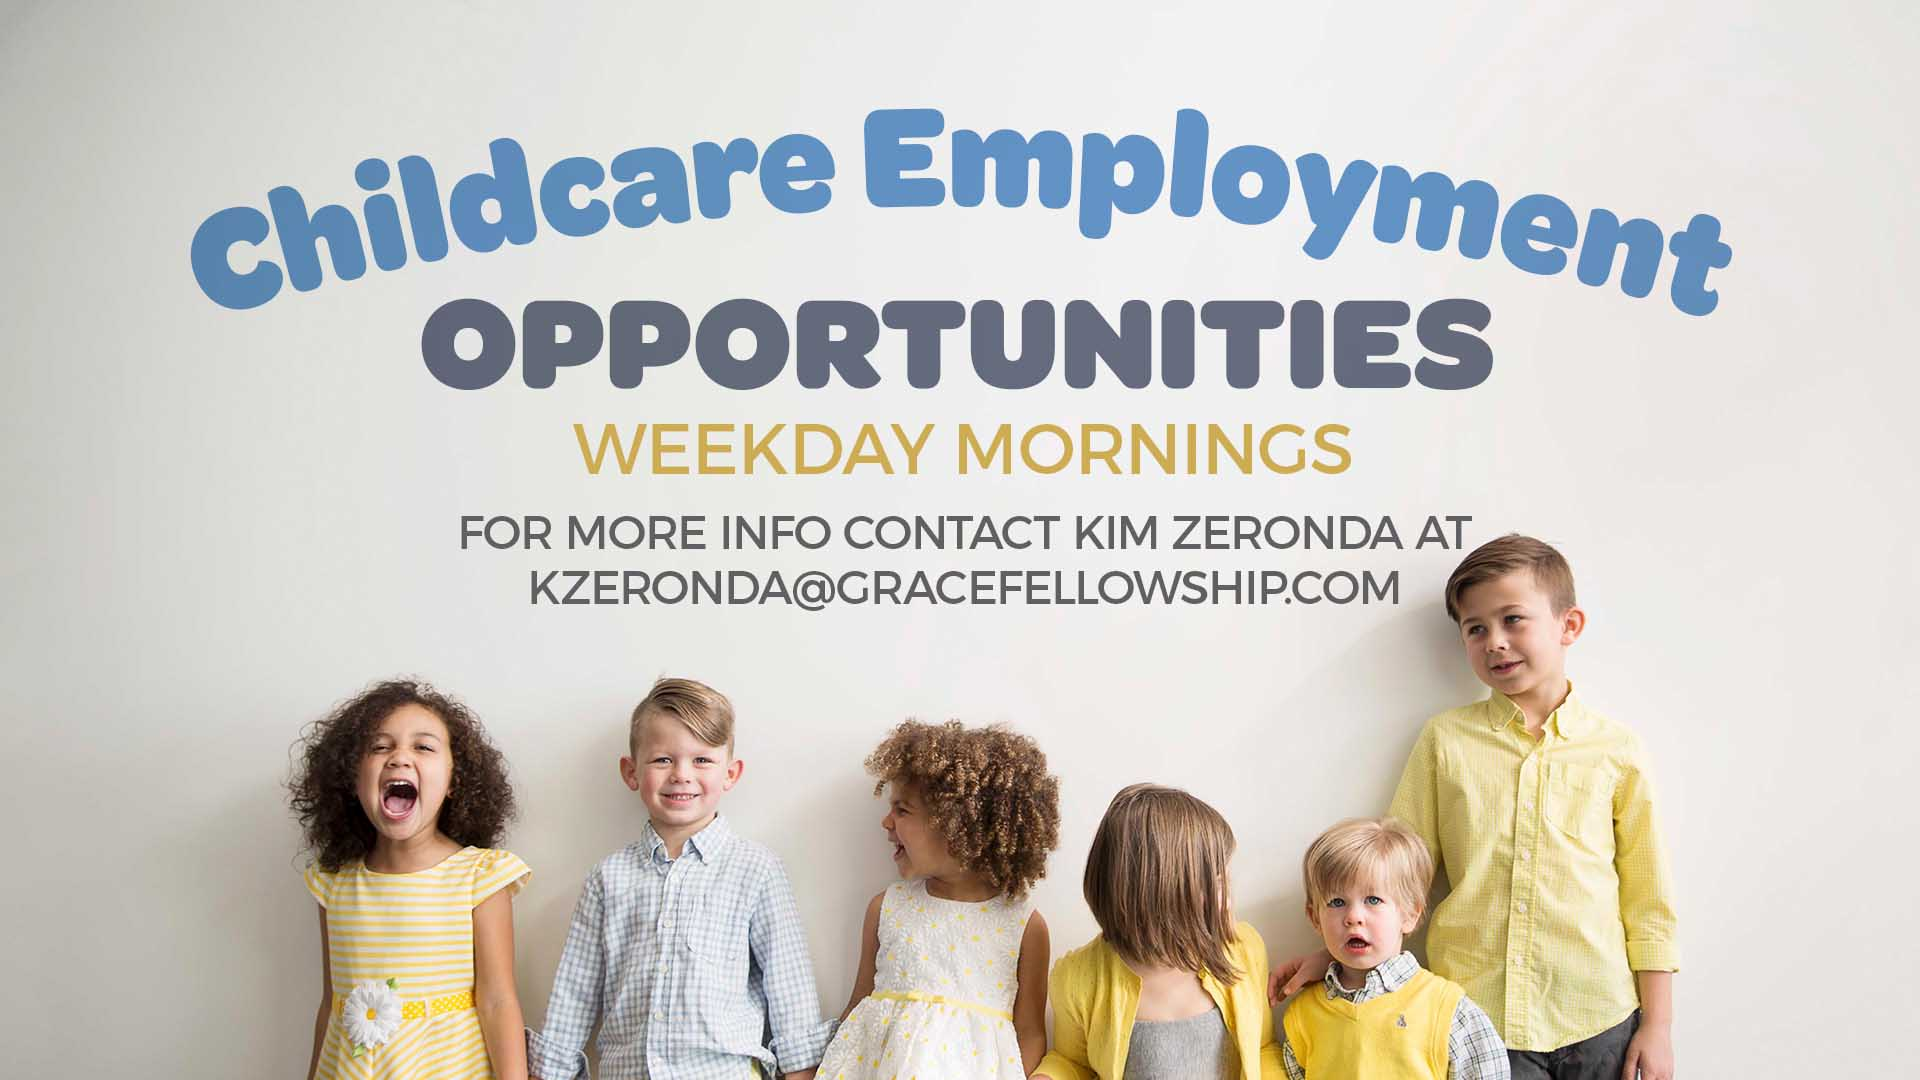 Childcare Employment Opportunities